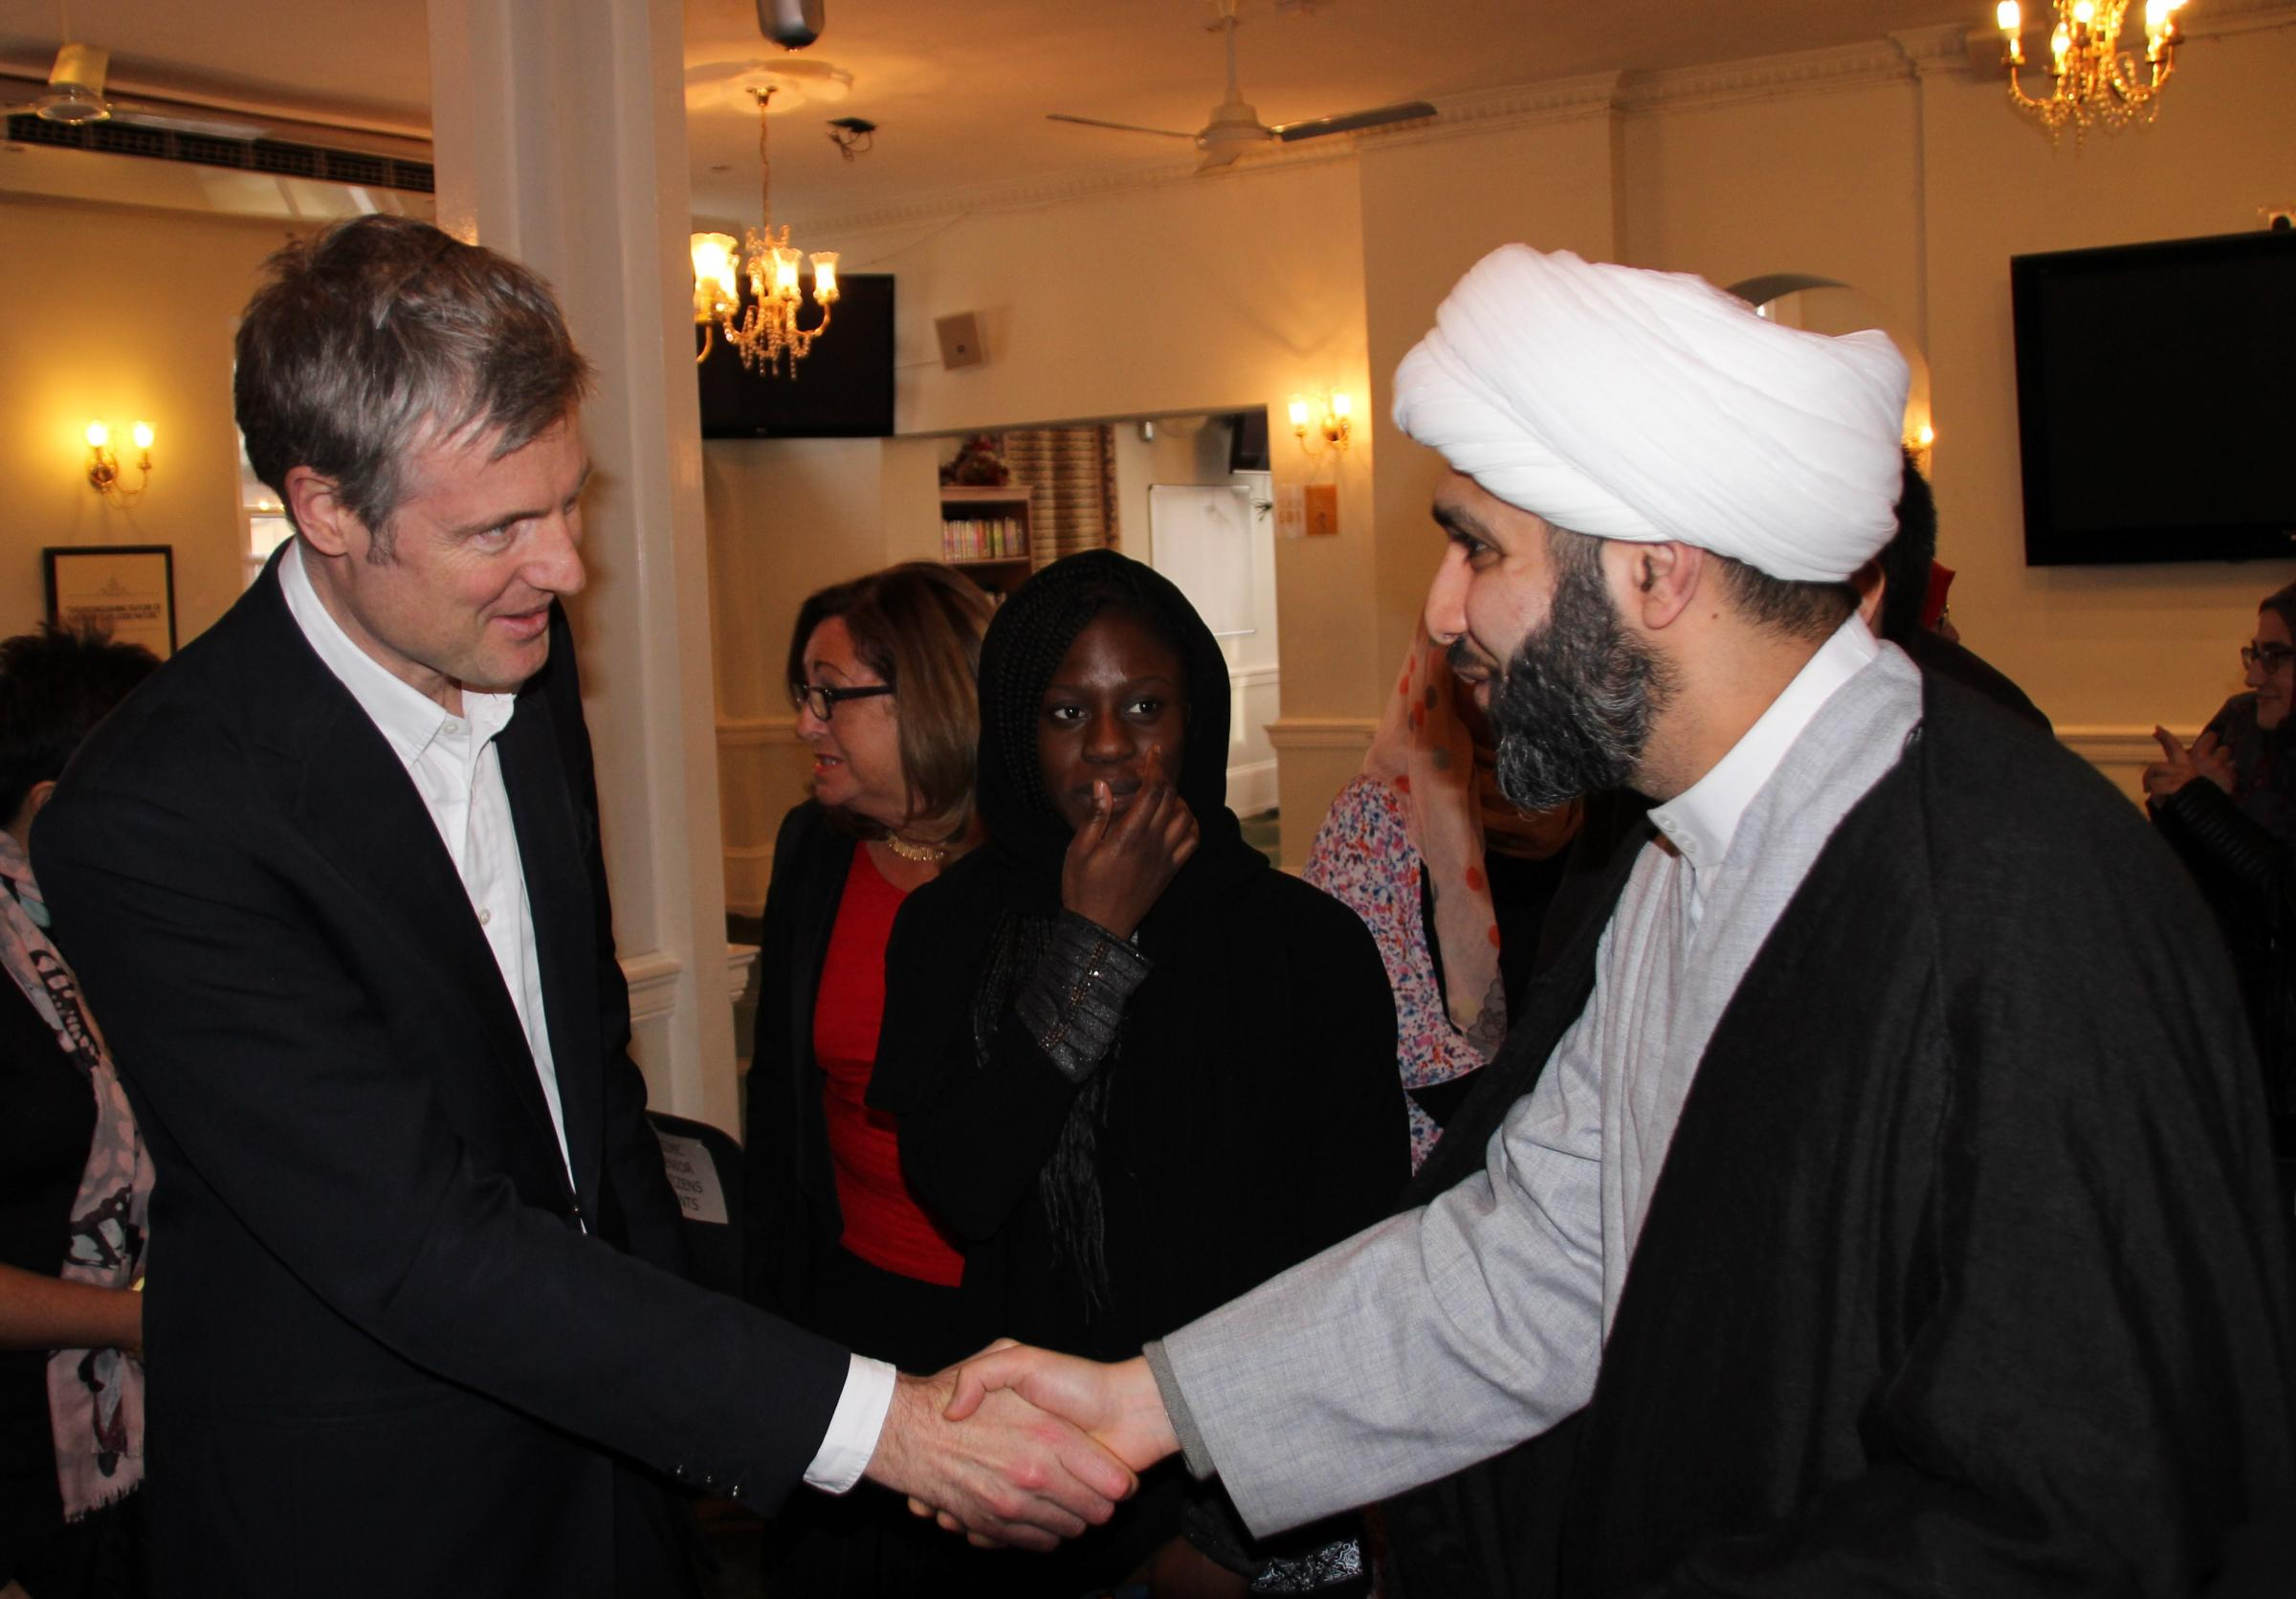 London Mayoral candidate Zac Goldsmith joined Stanmore residents and interfaith leaders at the KSIMC Islamic Centre